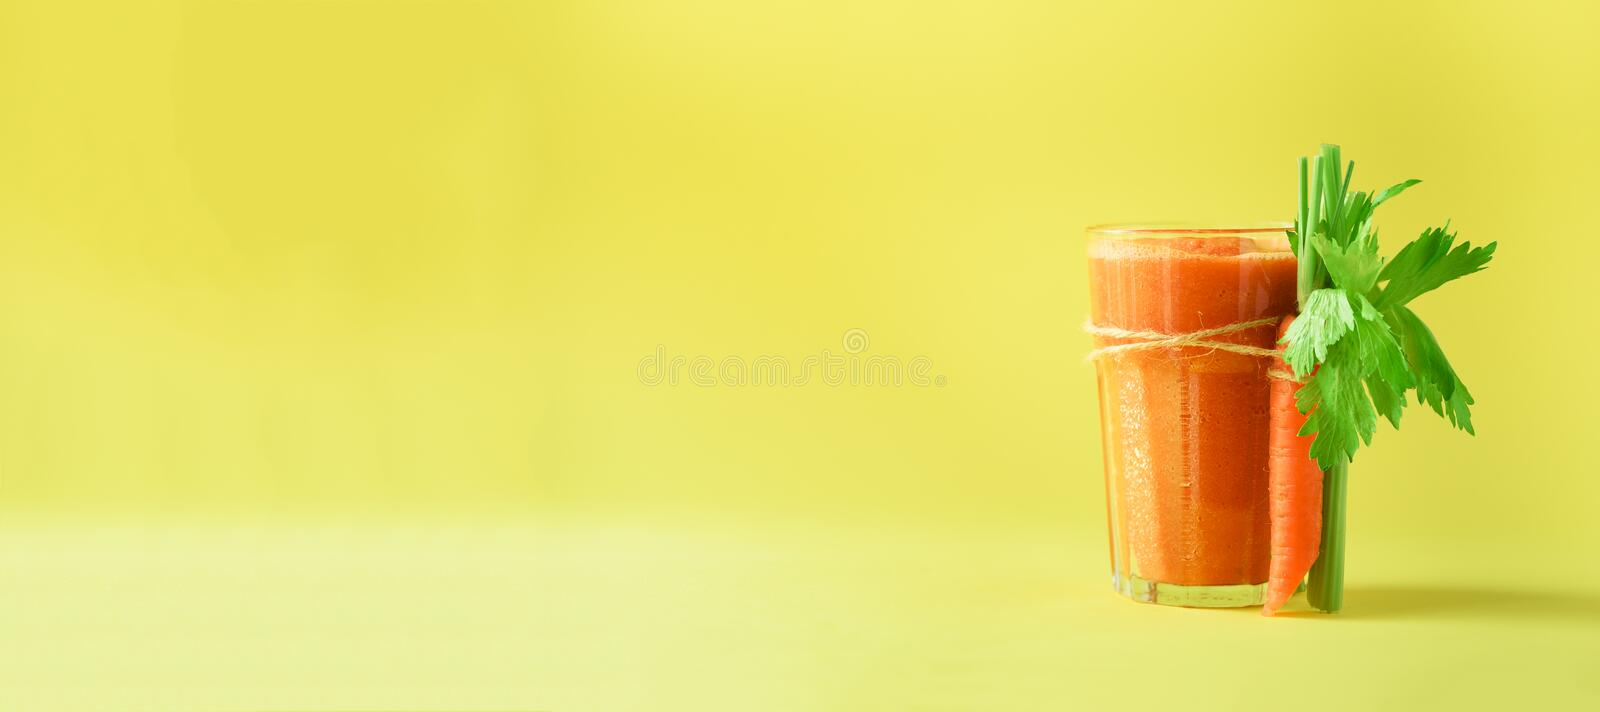 Organic carrot juice with carrots, celery on yellow background. Fresh vegetable smothie in glass. Banner. Copy space stock images